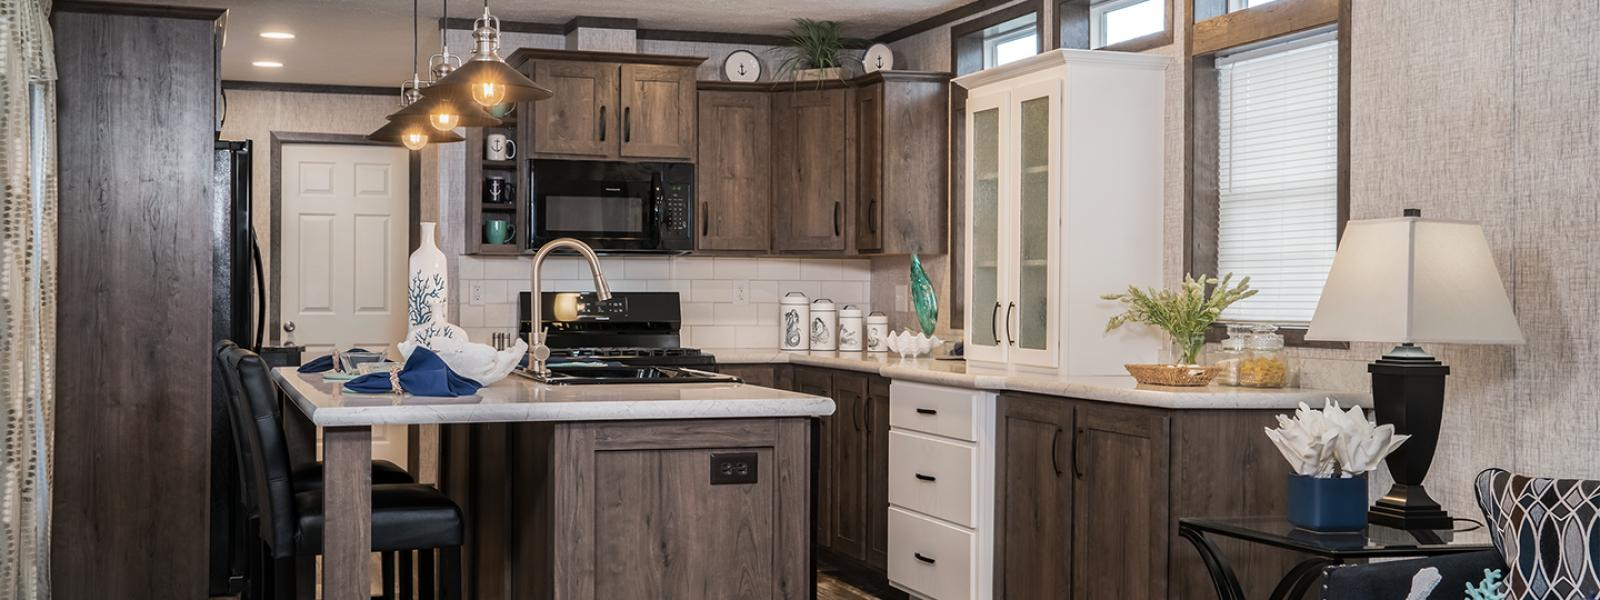 DD Homes :: DD-Homes com - Modular Homes MD,Manufactured